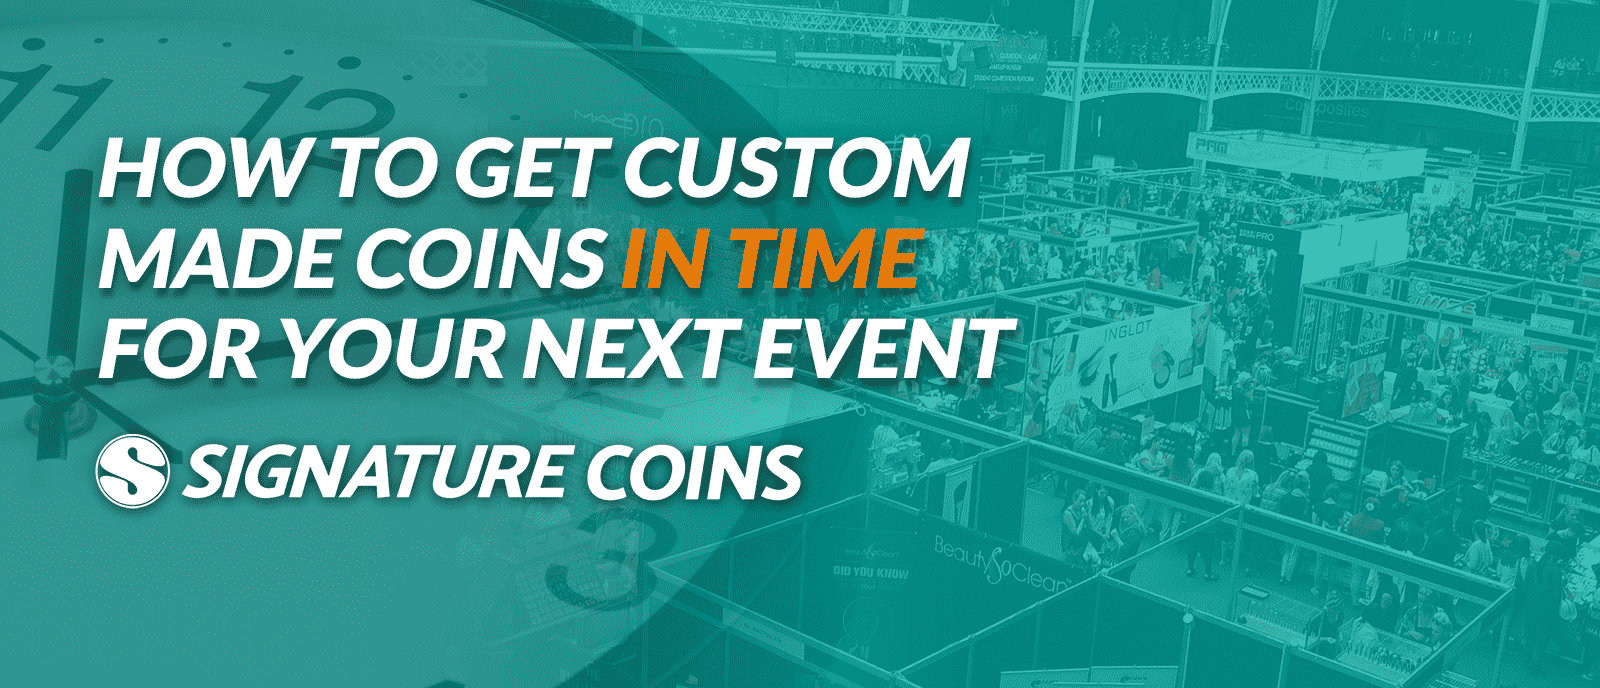 /How-to-Get-Custom-Made-Coins-in-Time-for-Your-Next-Event